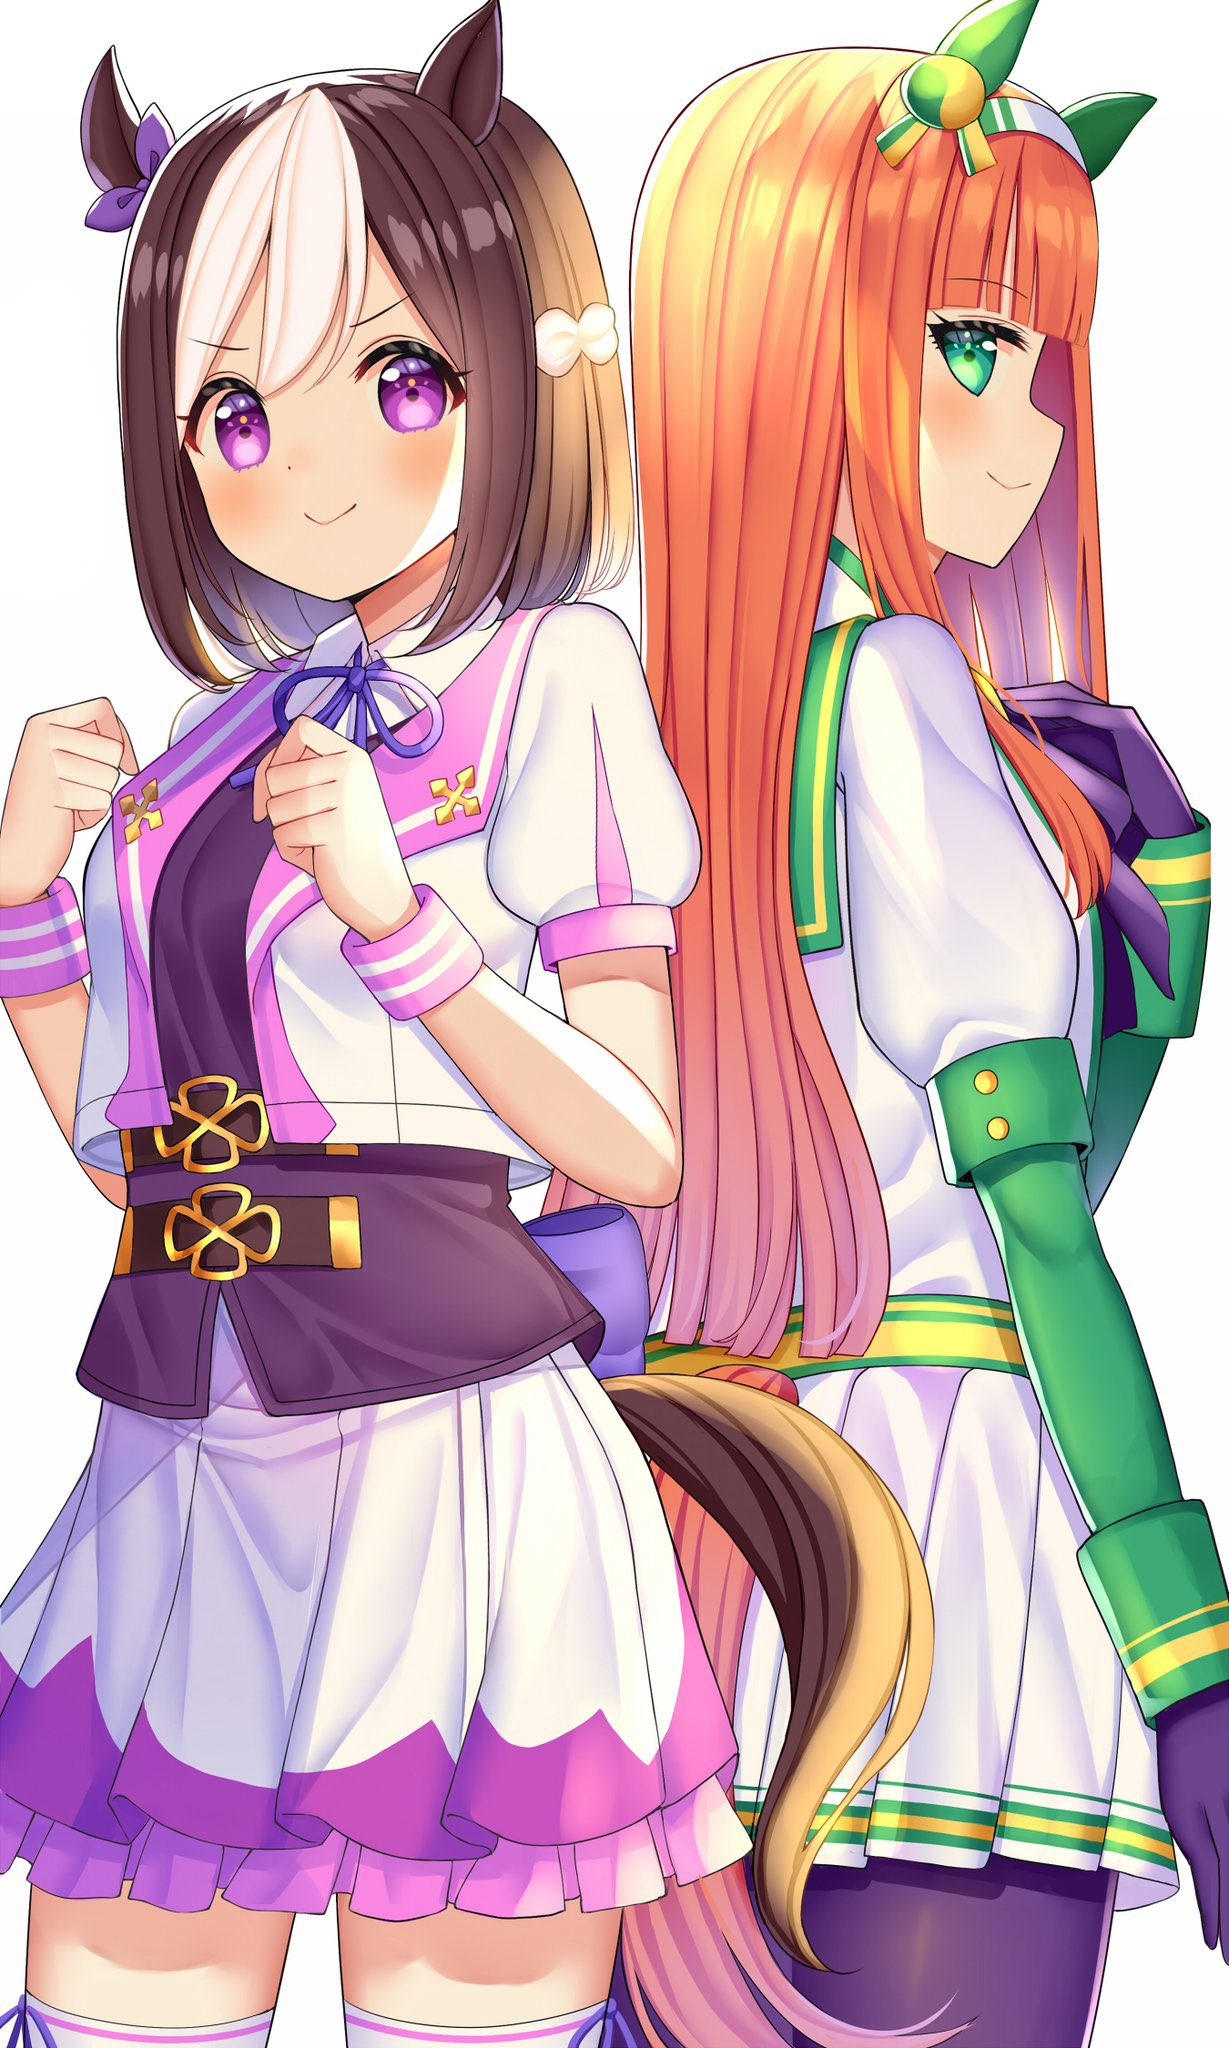 2girls animal_ears back-to-back bangs black_gloves black_legwear blunt_bangs bow brown_hair commentary_request ear_covers ear_ribbon gloves green_eyes green_sailor_collar hairband highres horse_ears horse_girl horse_tail long_hair mizukoshi_(marumi) multicolored_hair multiple_girls orange_hair pantyhose purple_bow purple_skirt sailor_collar short_hair short_sleeves silence_suzuka simple_background skirt special_week tail thigh-highs two-tone_hair umamusume violet_eyes white_background white_hair white_skirt wrist_cuffs